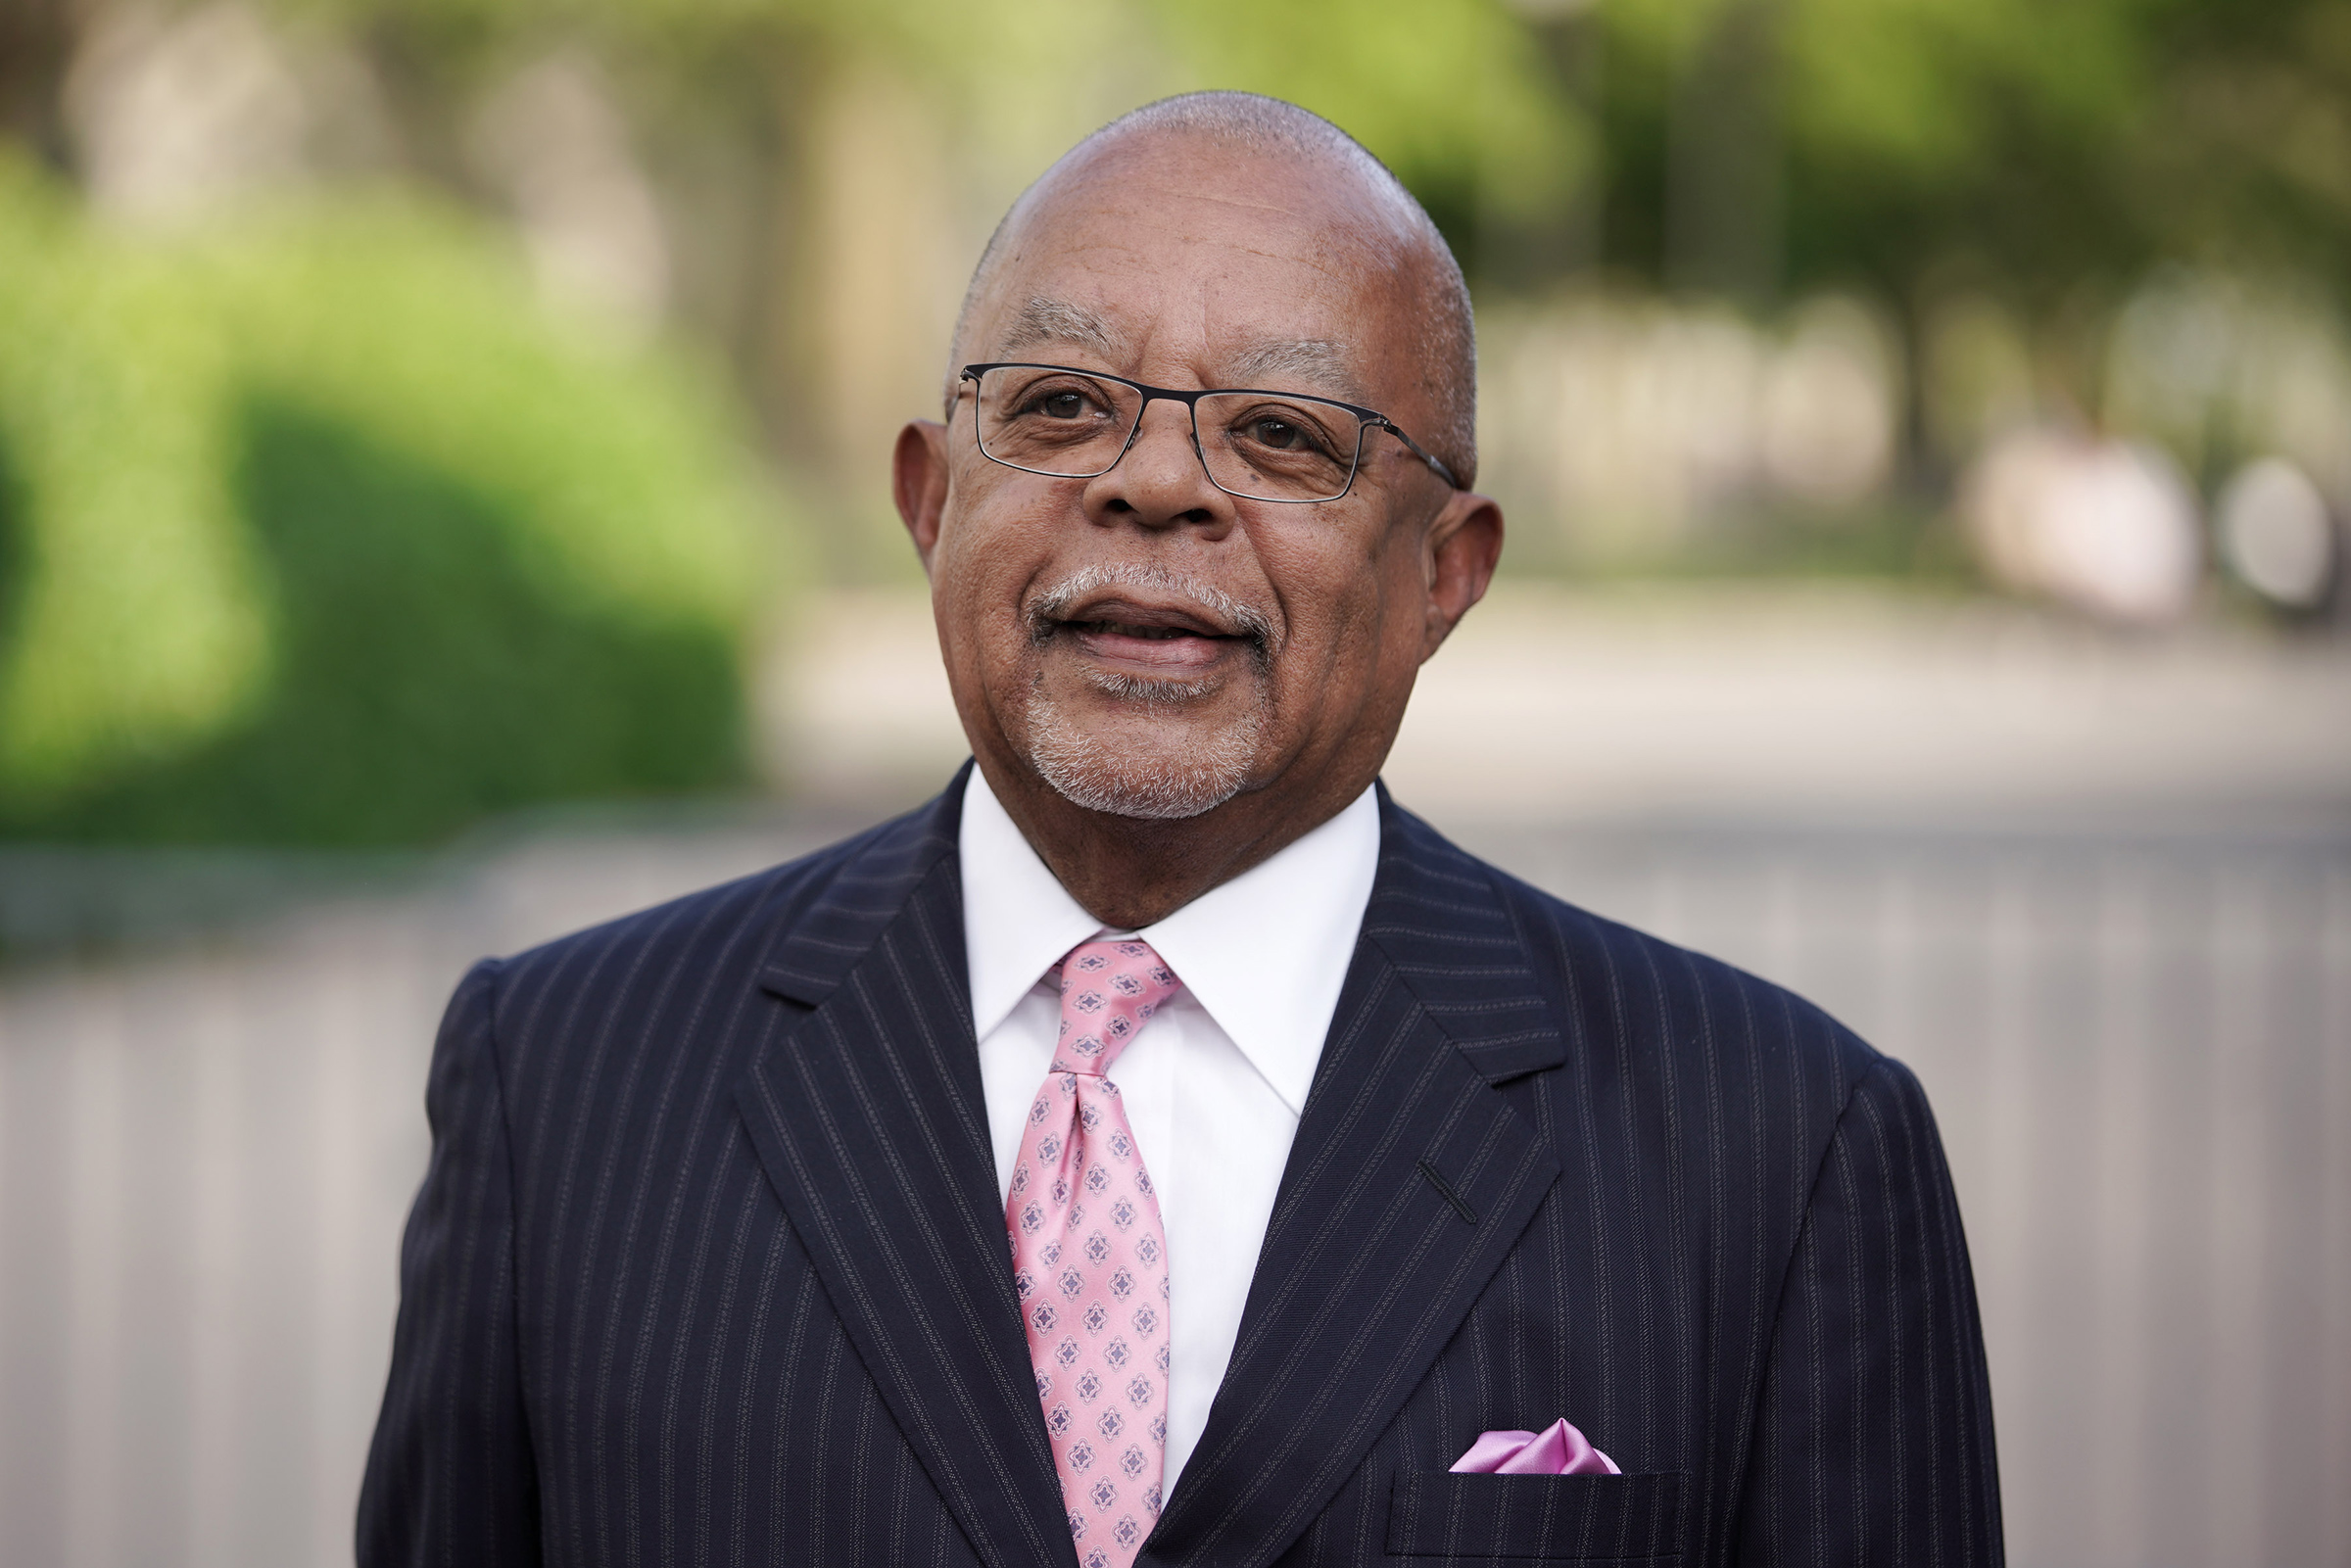 Henry Louis Gates Jr. arrives at the Statue Of Liberty Museum Opening Celebration at Battery Park in New York City on May 15, 2019.